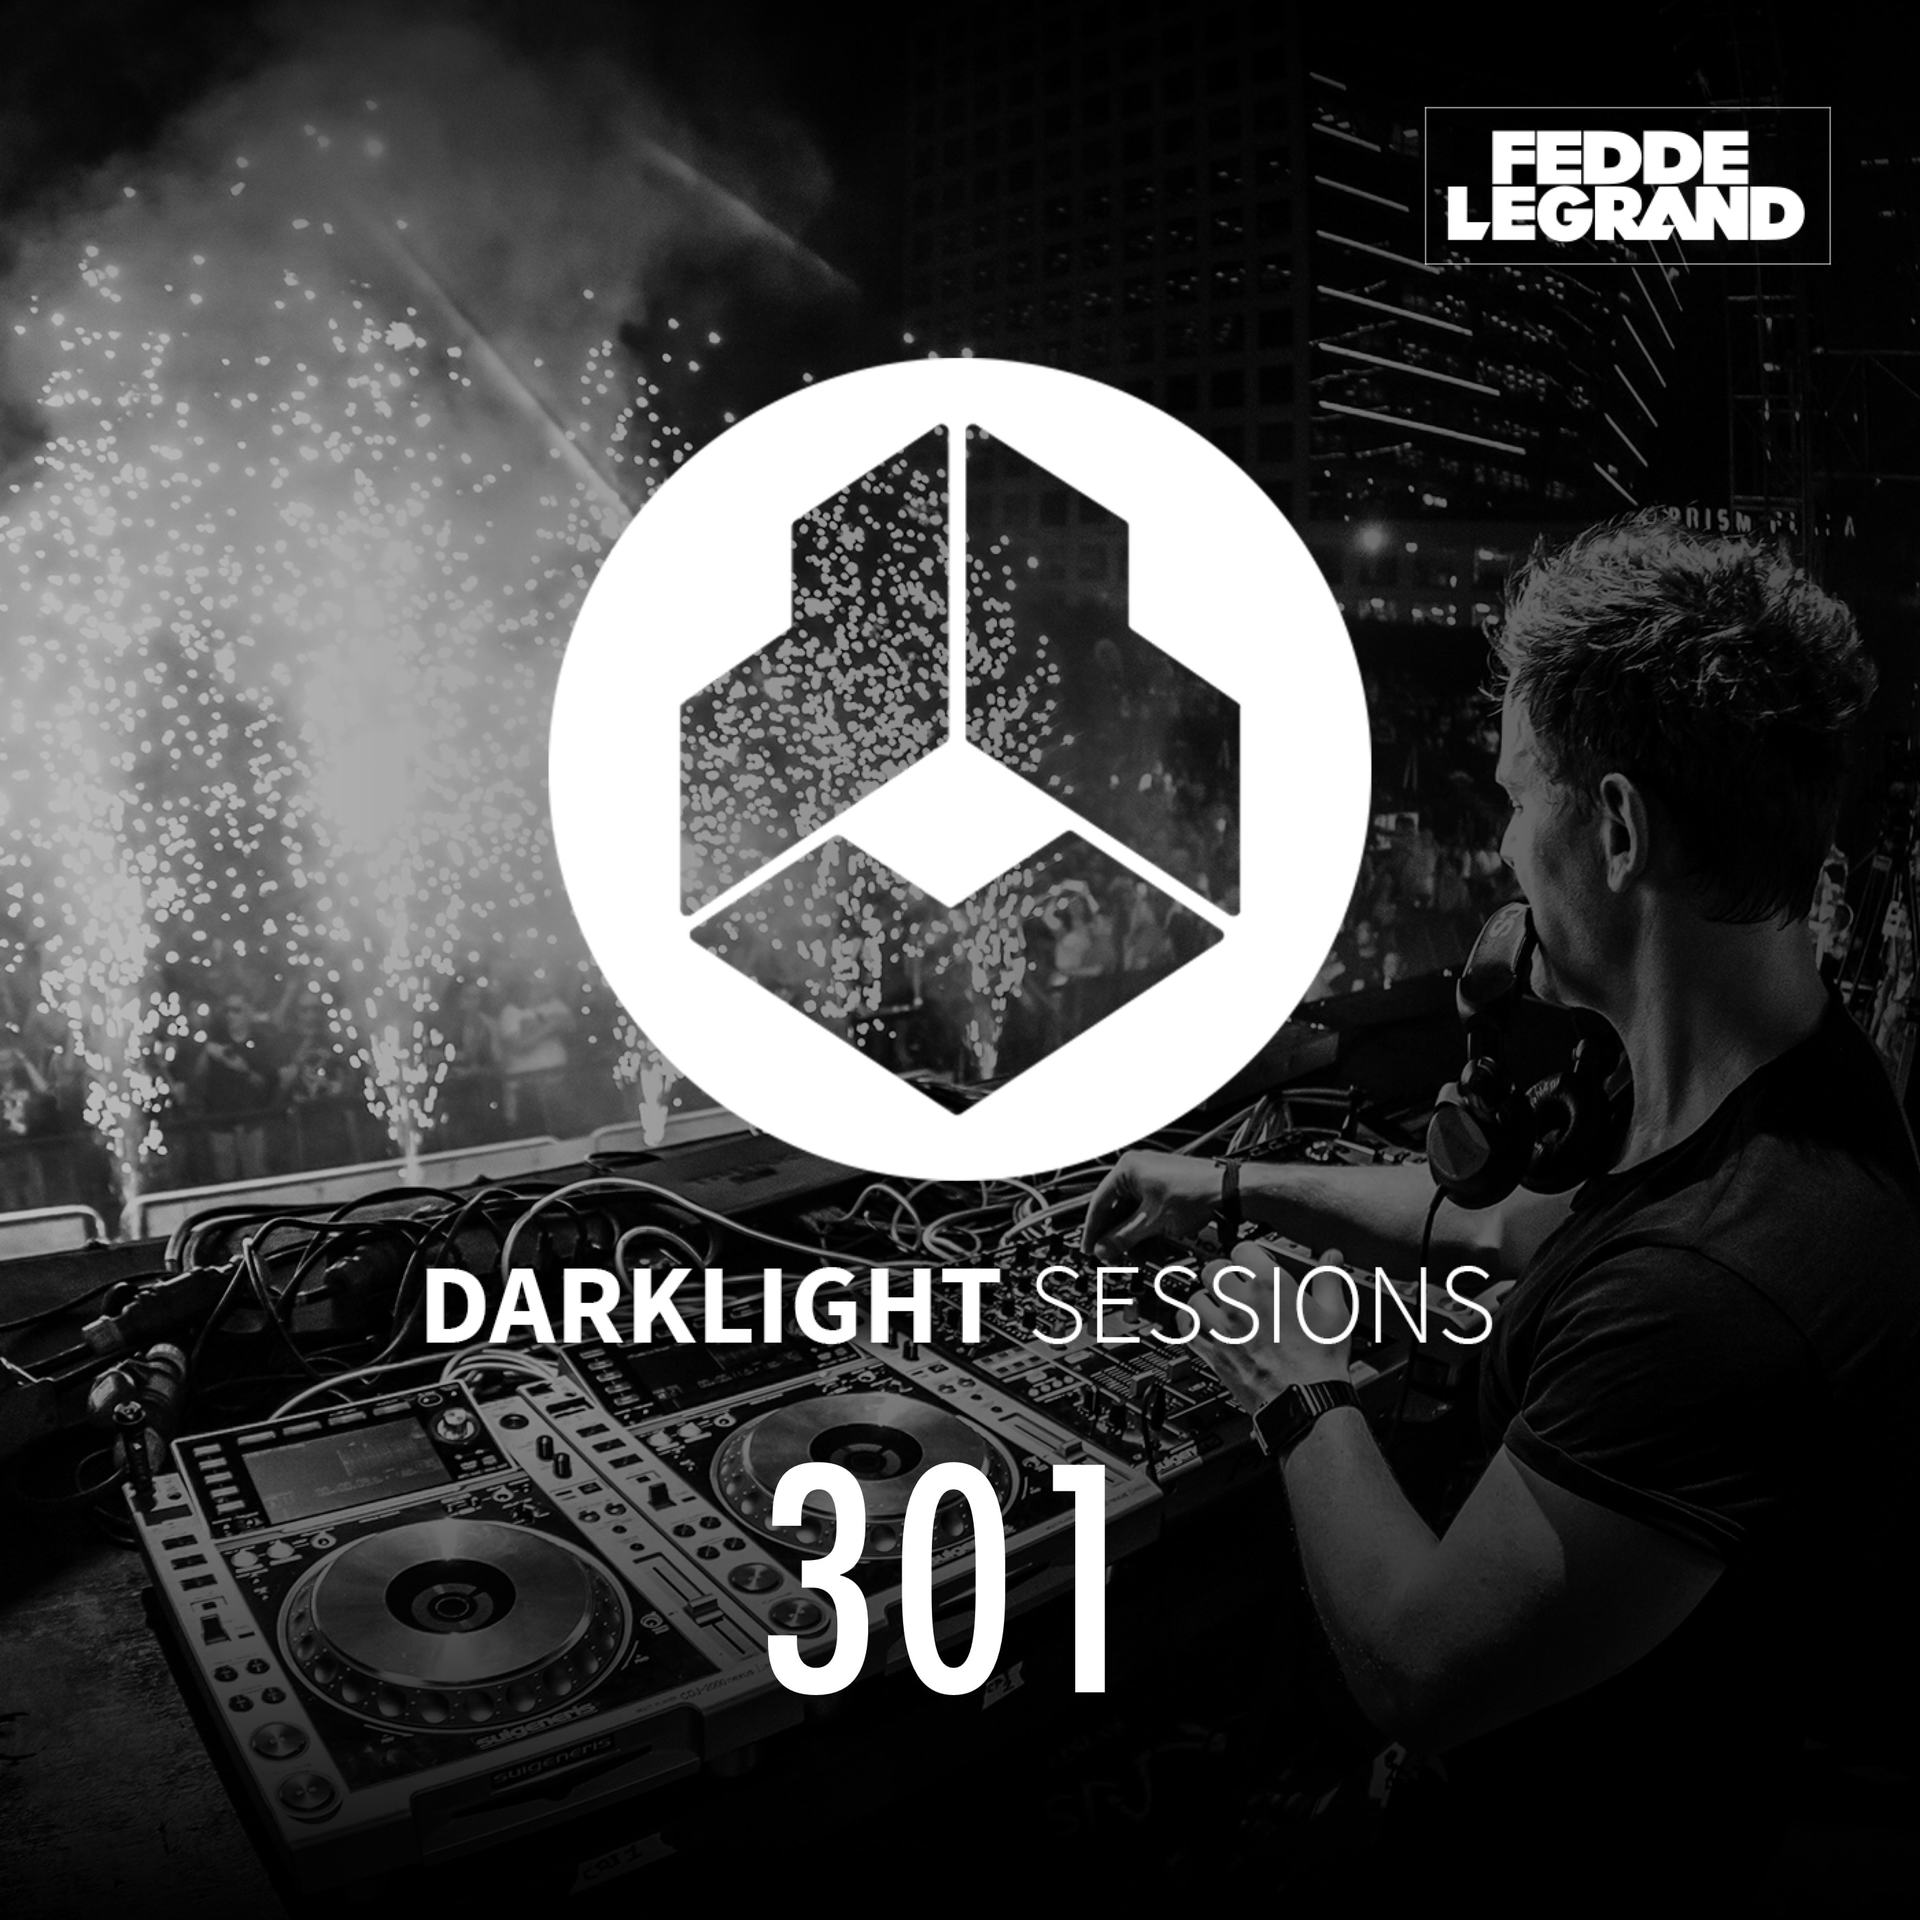 Darklight Sessions 301